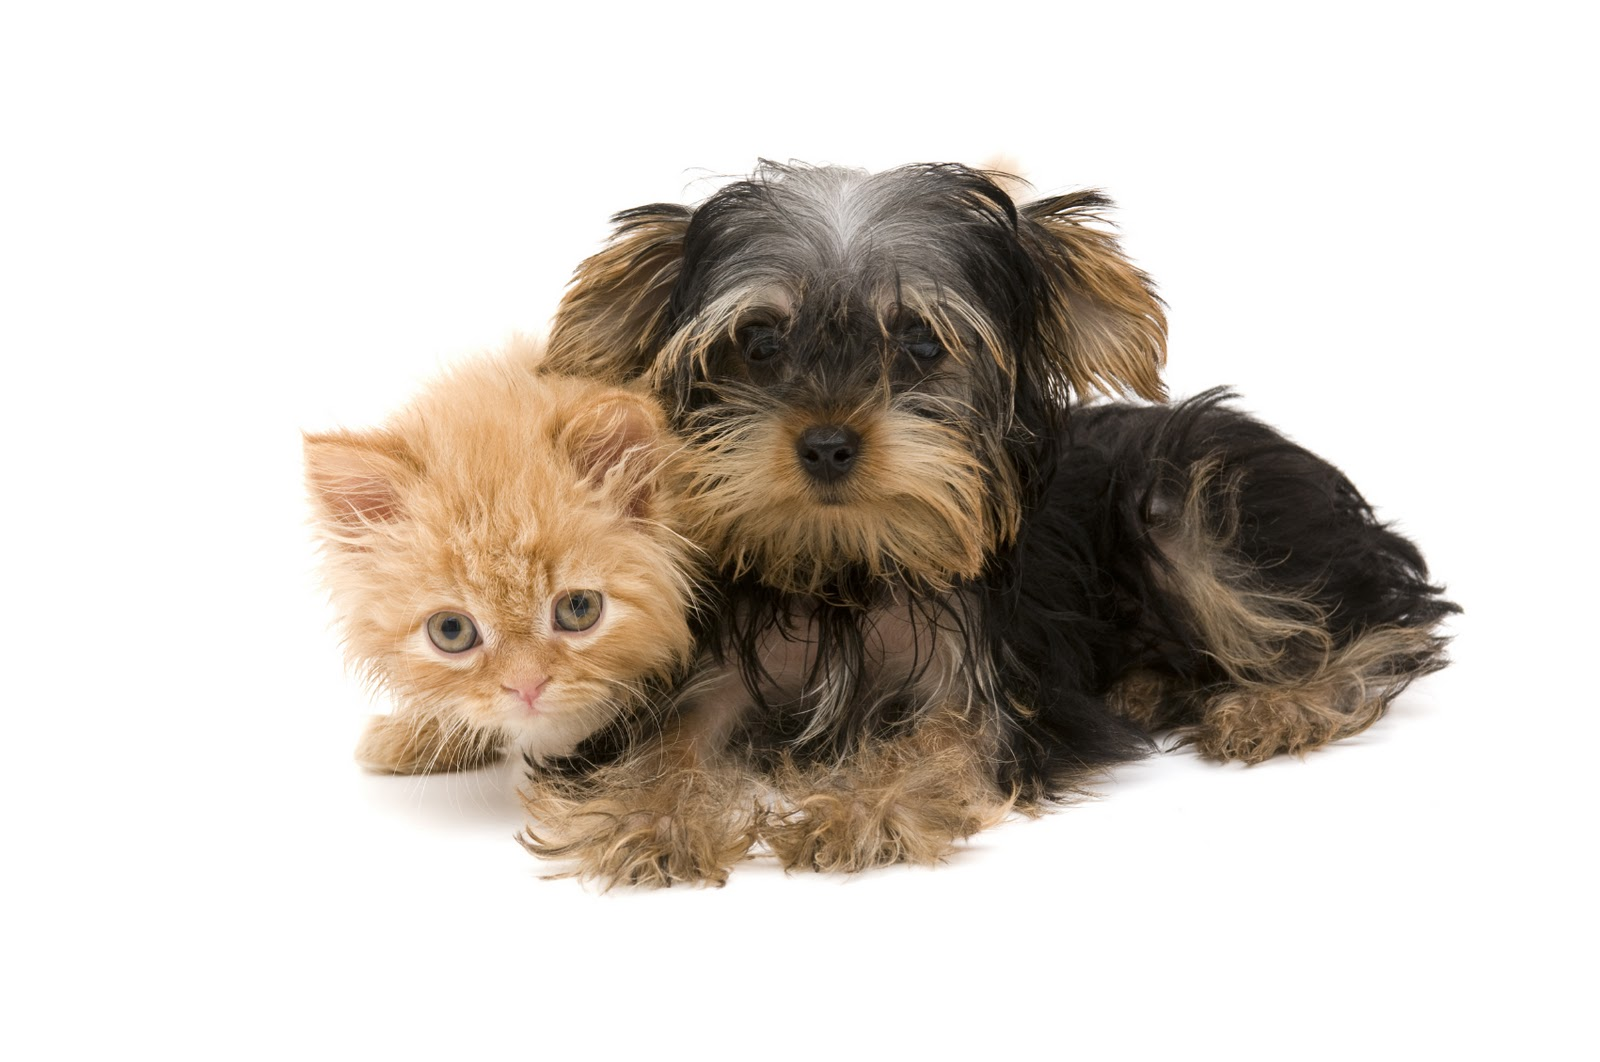 Cool Animals Pictures: Kittens and Puppies